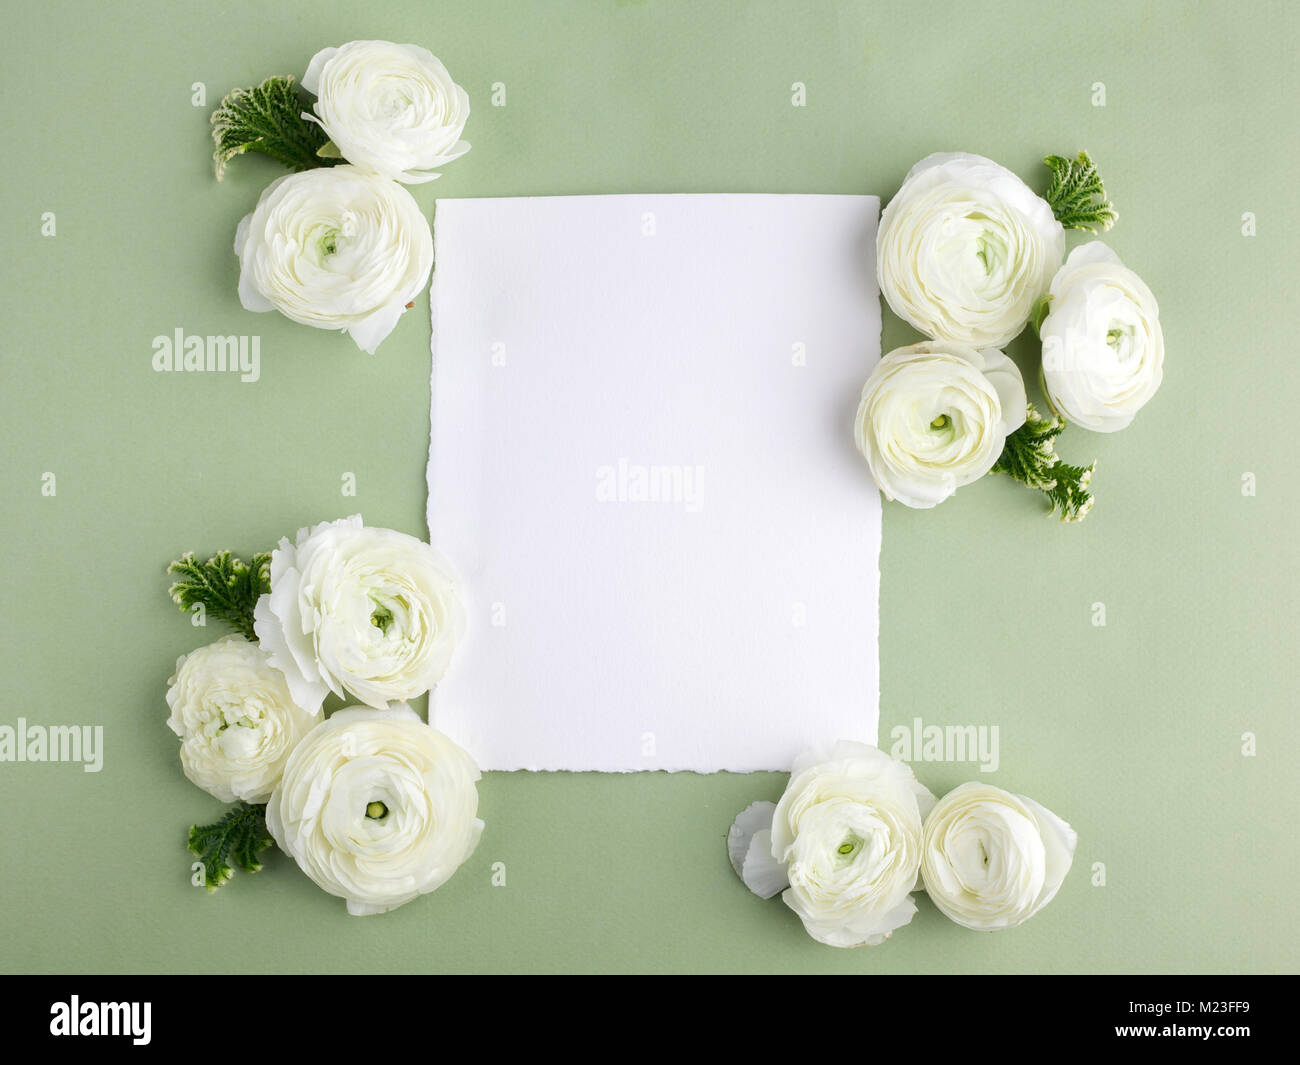 Floral Frame Made Of White Flowers And Leaves On Green Background